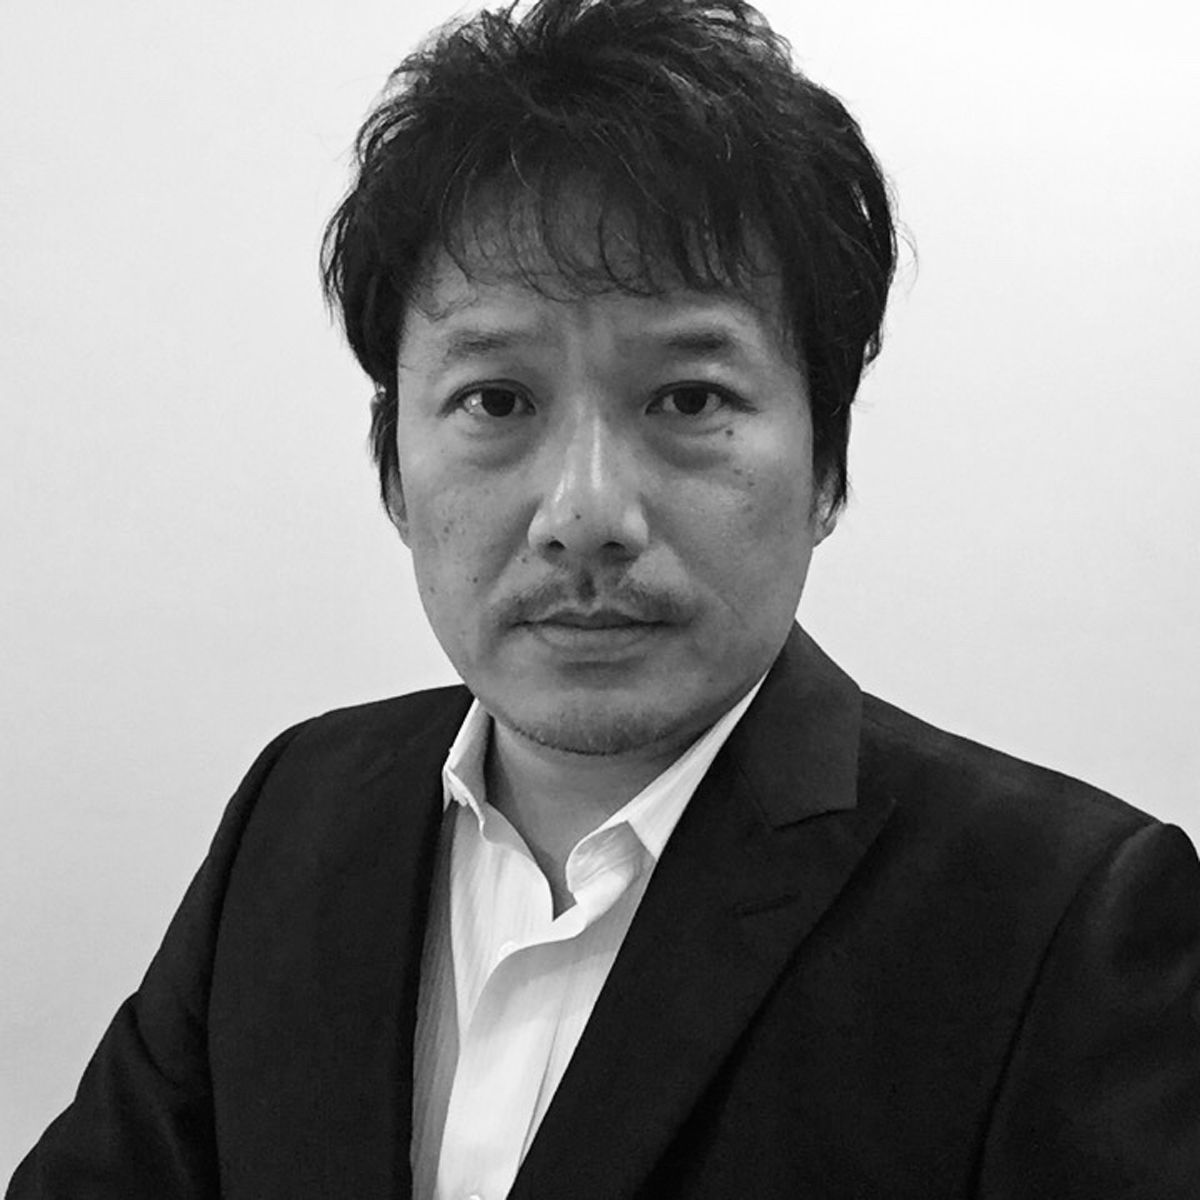 """2020 MUSE Design Awards #Winner's #SuccessStory — Kenji Muro, GARDE CO., LTD., Japan  """"For me, 'design' means providing new values to the market and customers.""""  Read more here: https://t.co/huTjmbbox9  #MUSE #MUSEDesignAwards #interiordesign #aesthetic #minimalism https://t.co/mVjGoukkAm"""